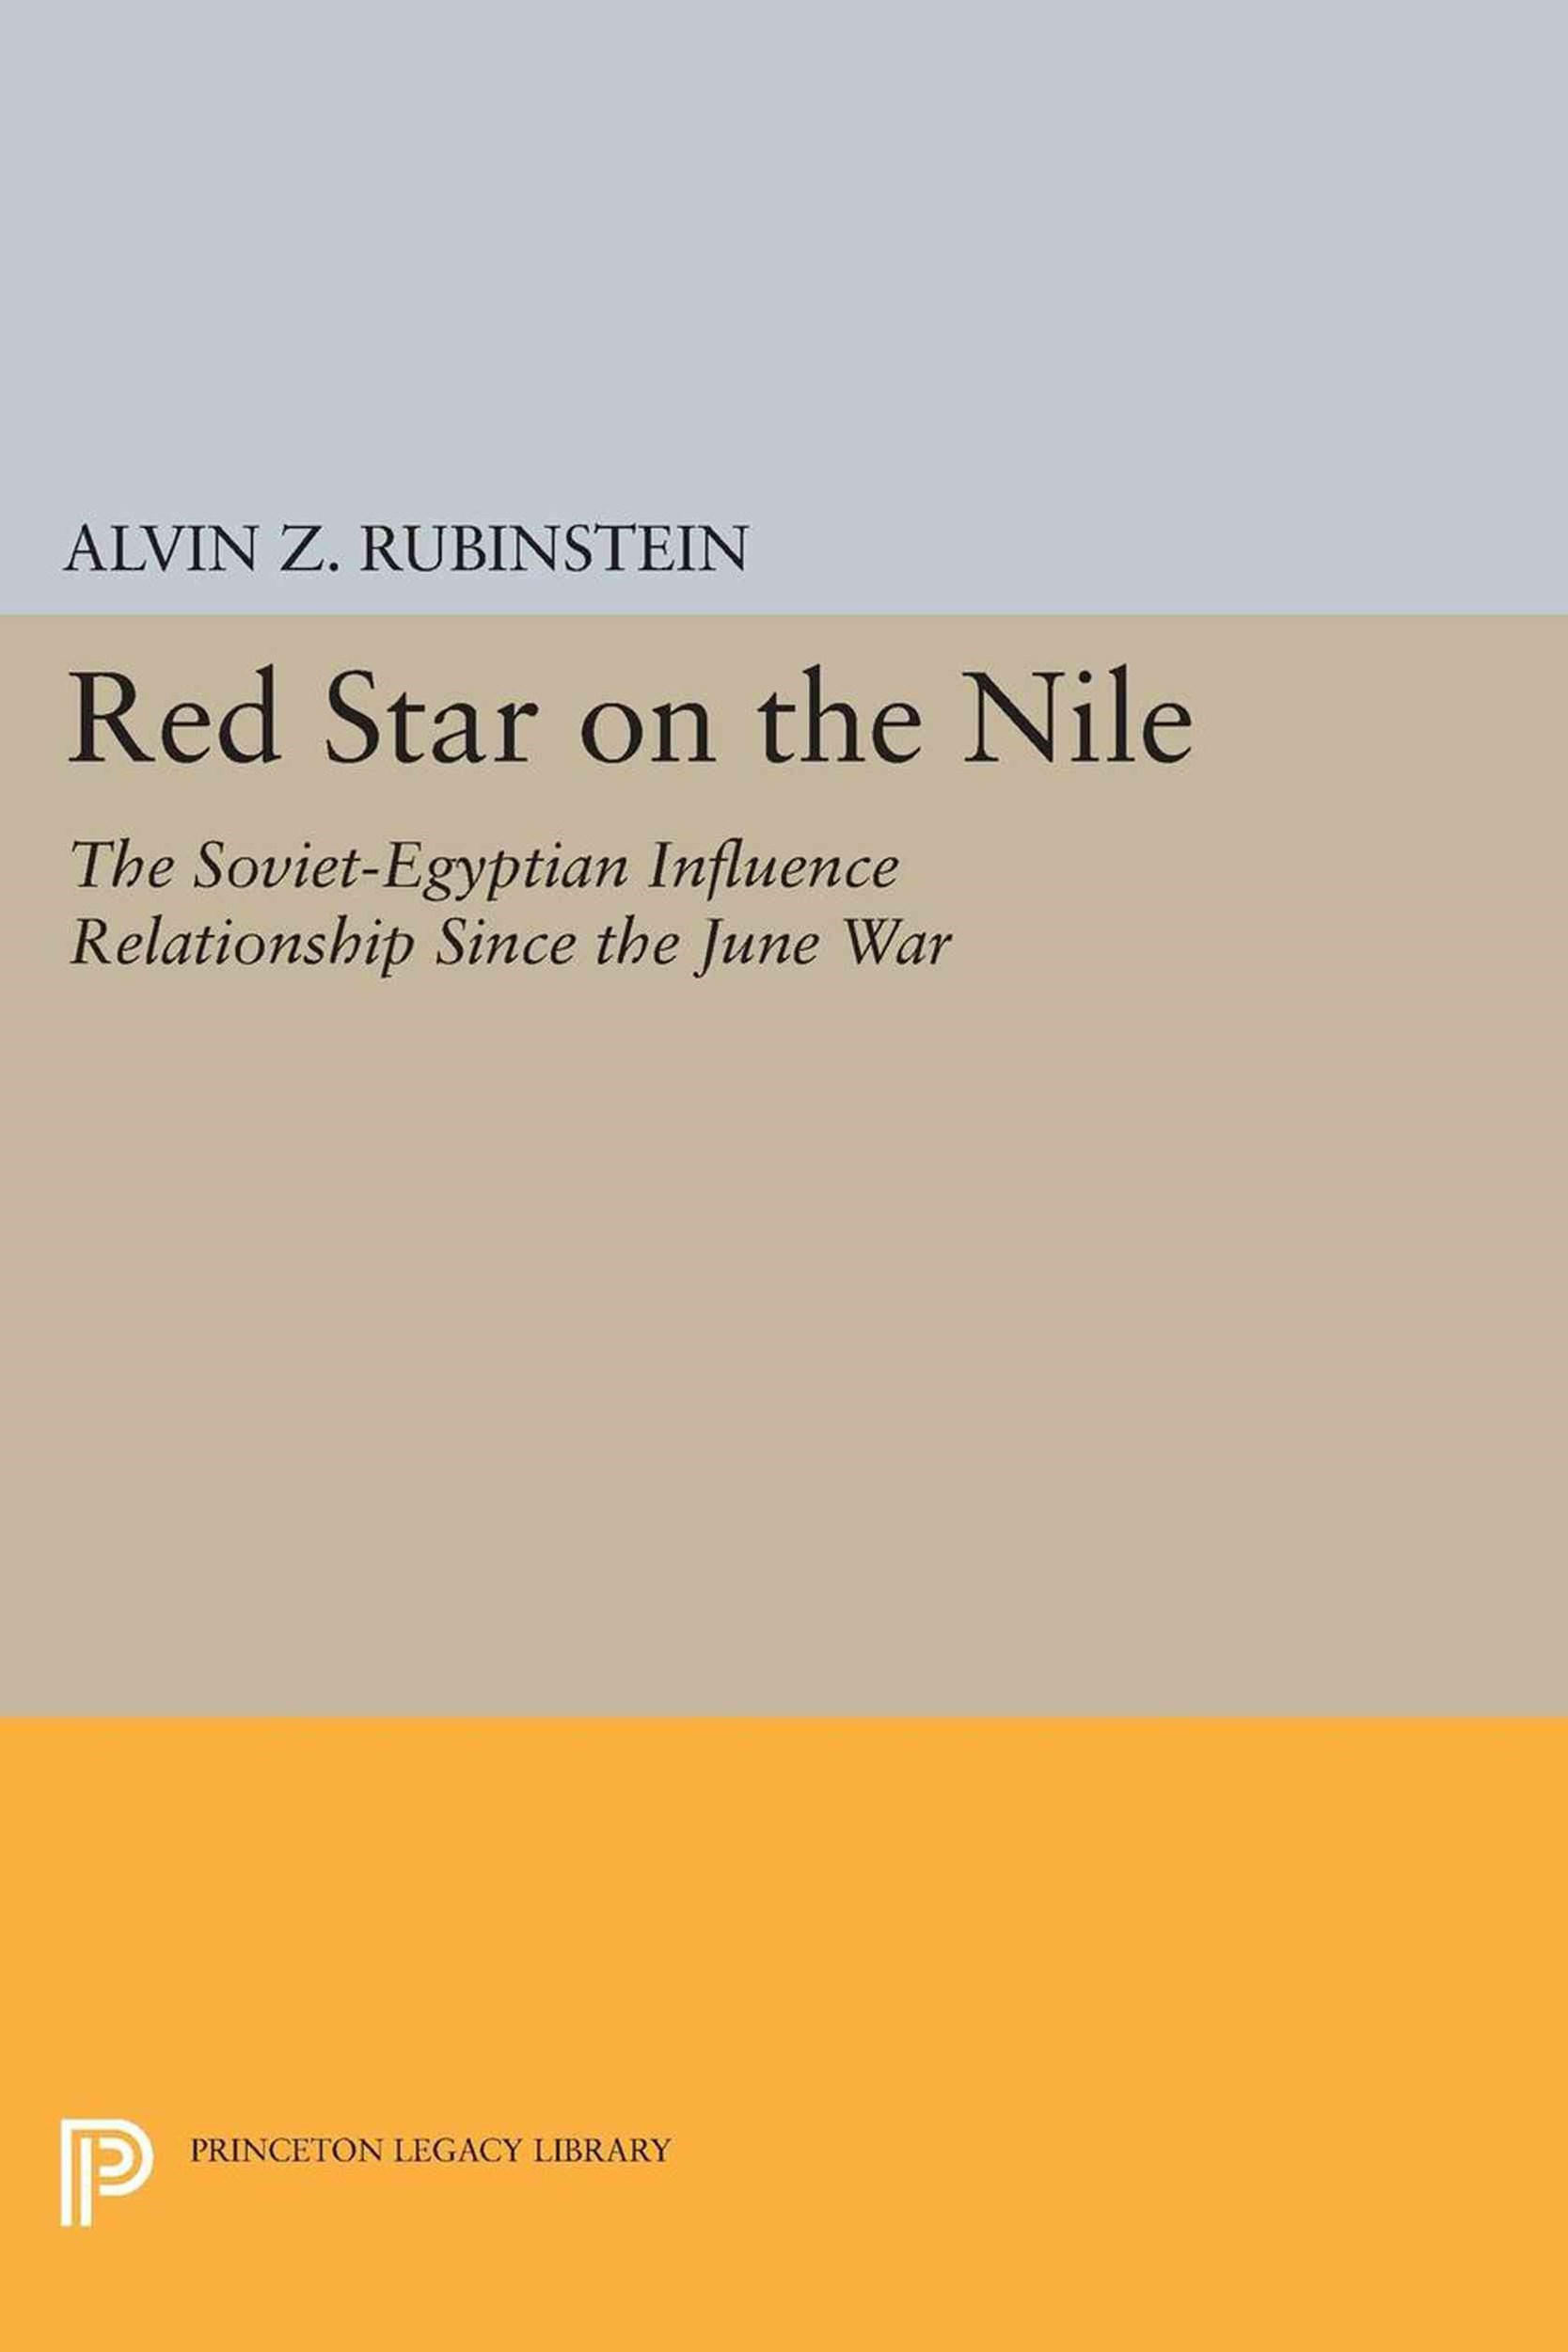 Red Star on the Nile